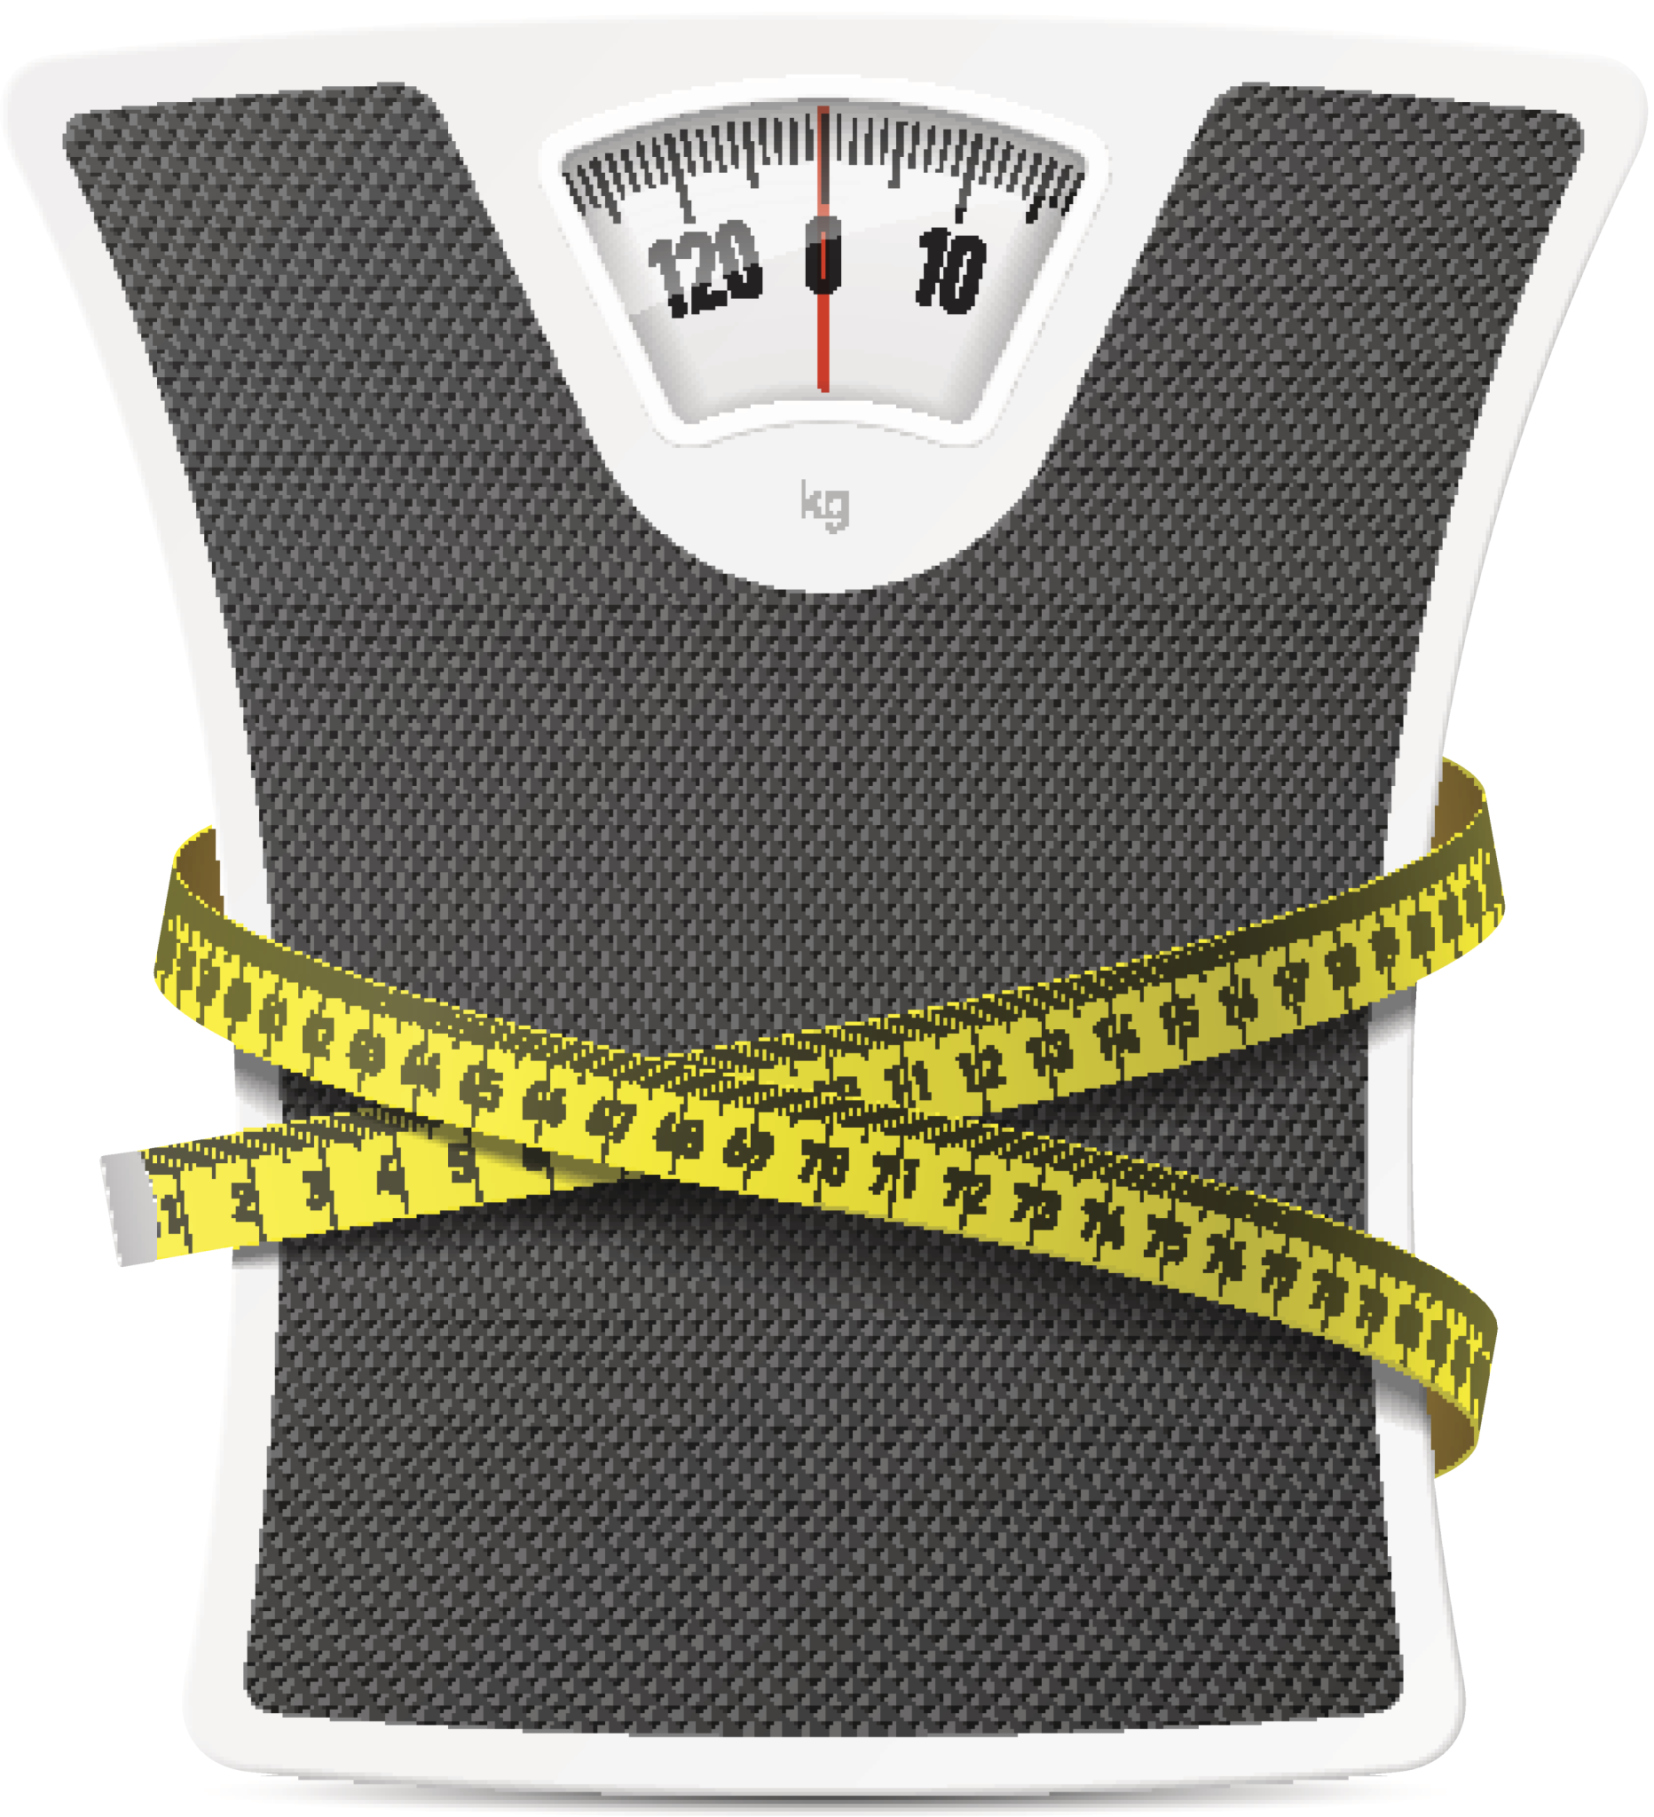 nwcr weight loss study